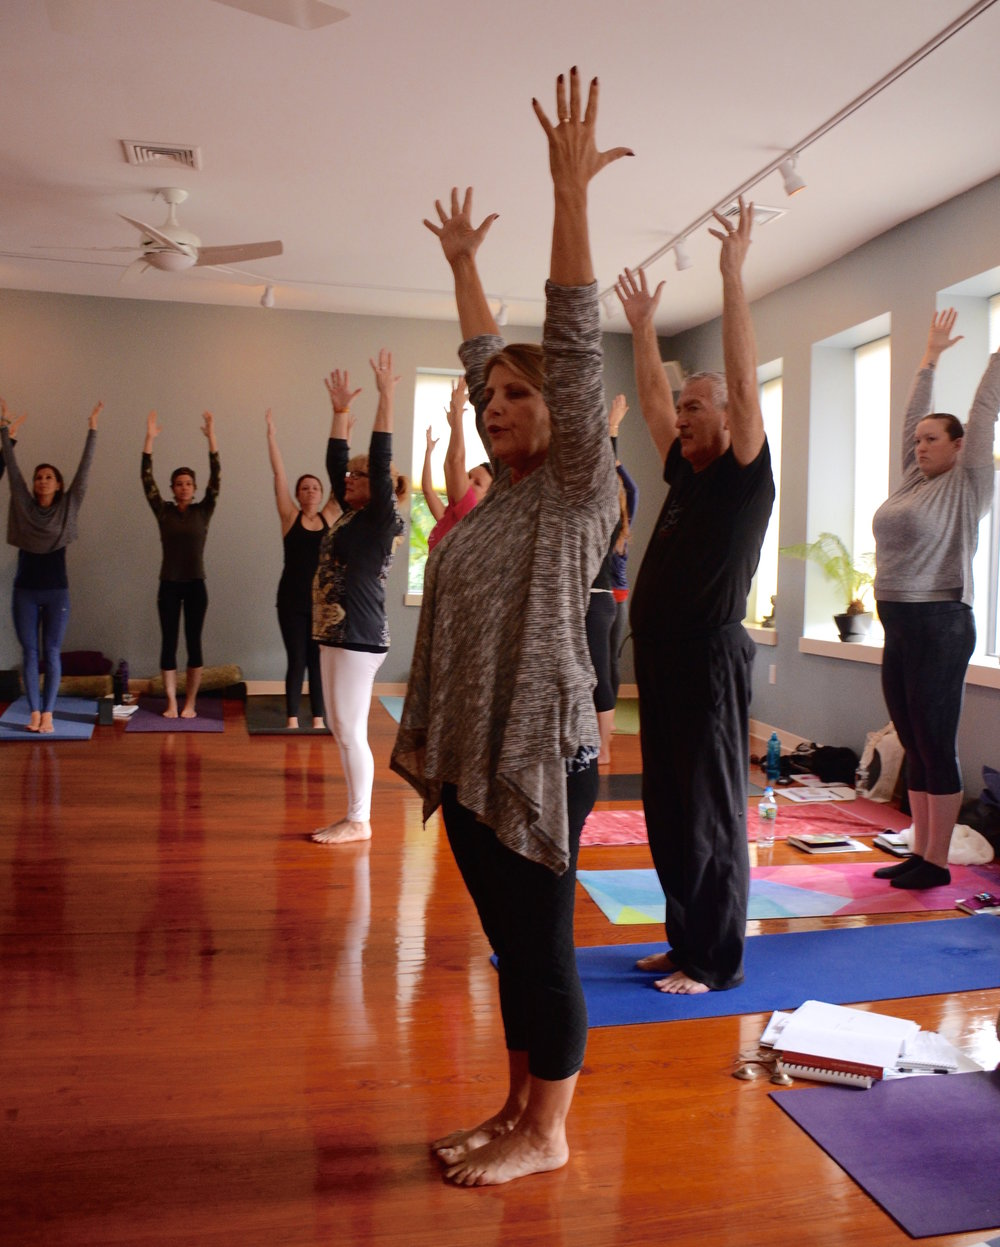 Colleen leads a group through a trauma-sensitive, mindfulness-based yoga class during one of TYP's trainings. The next training that Colleen will lead is the weekend of June 1-3 in Philadelphia.  Learn more here